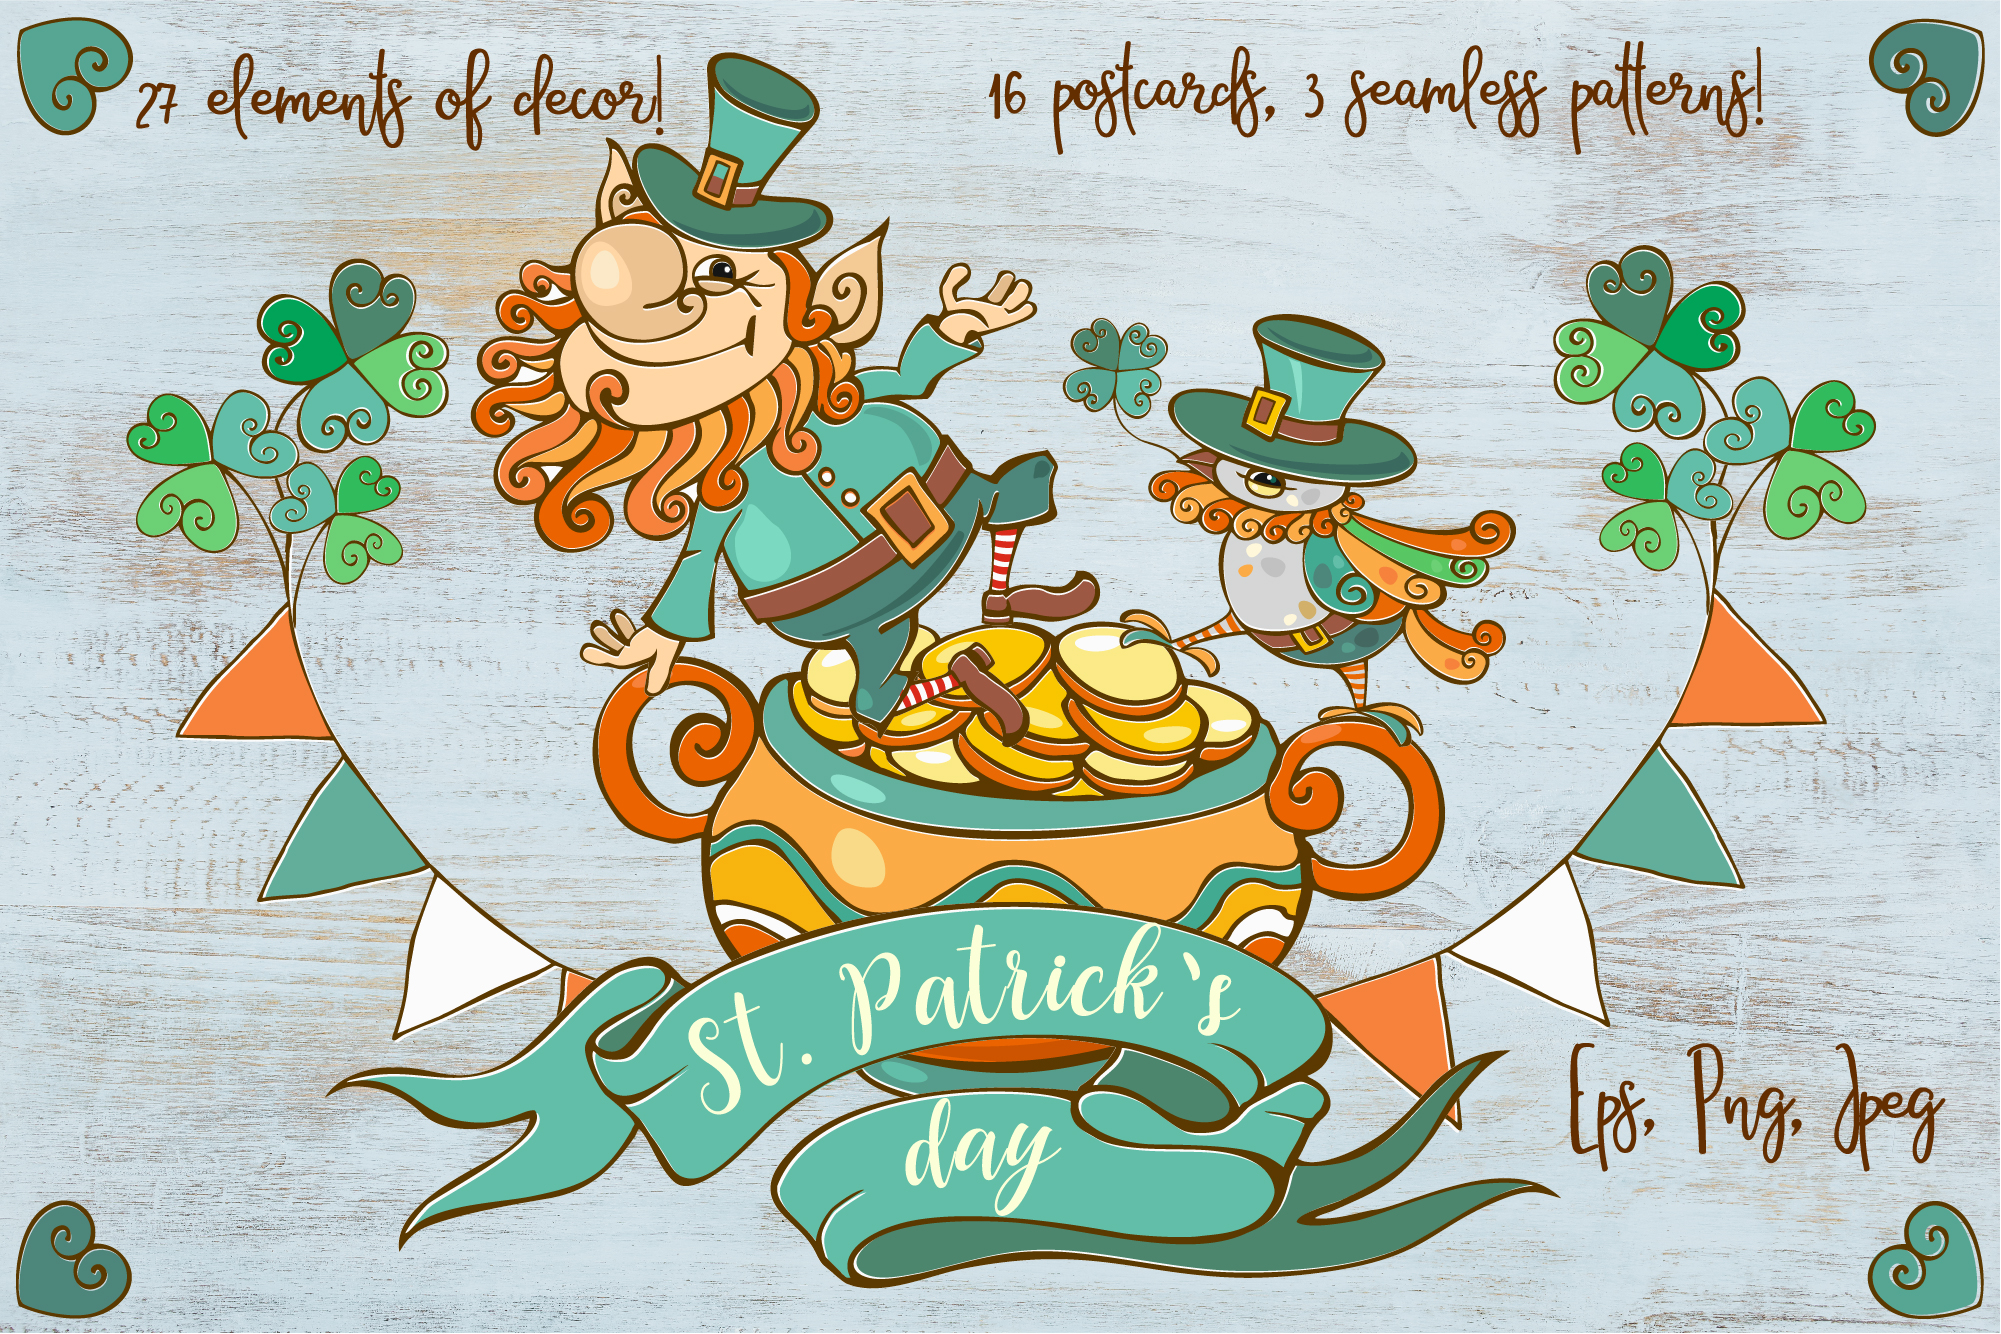 St. Patrick's day! example image 1